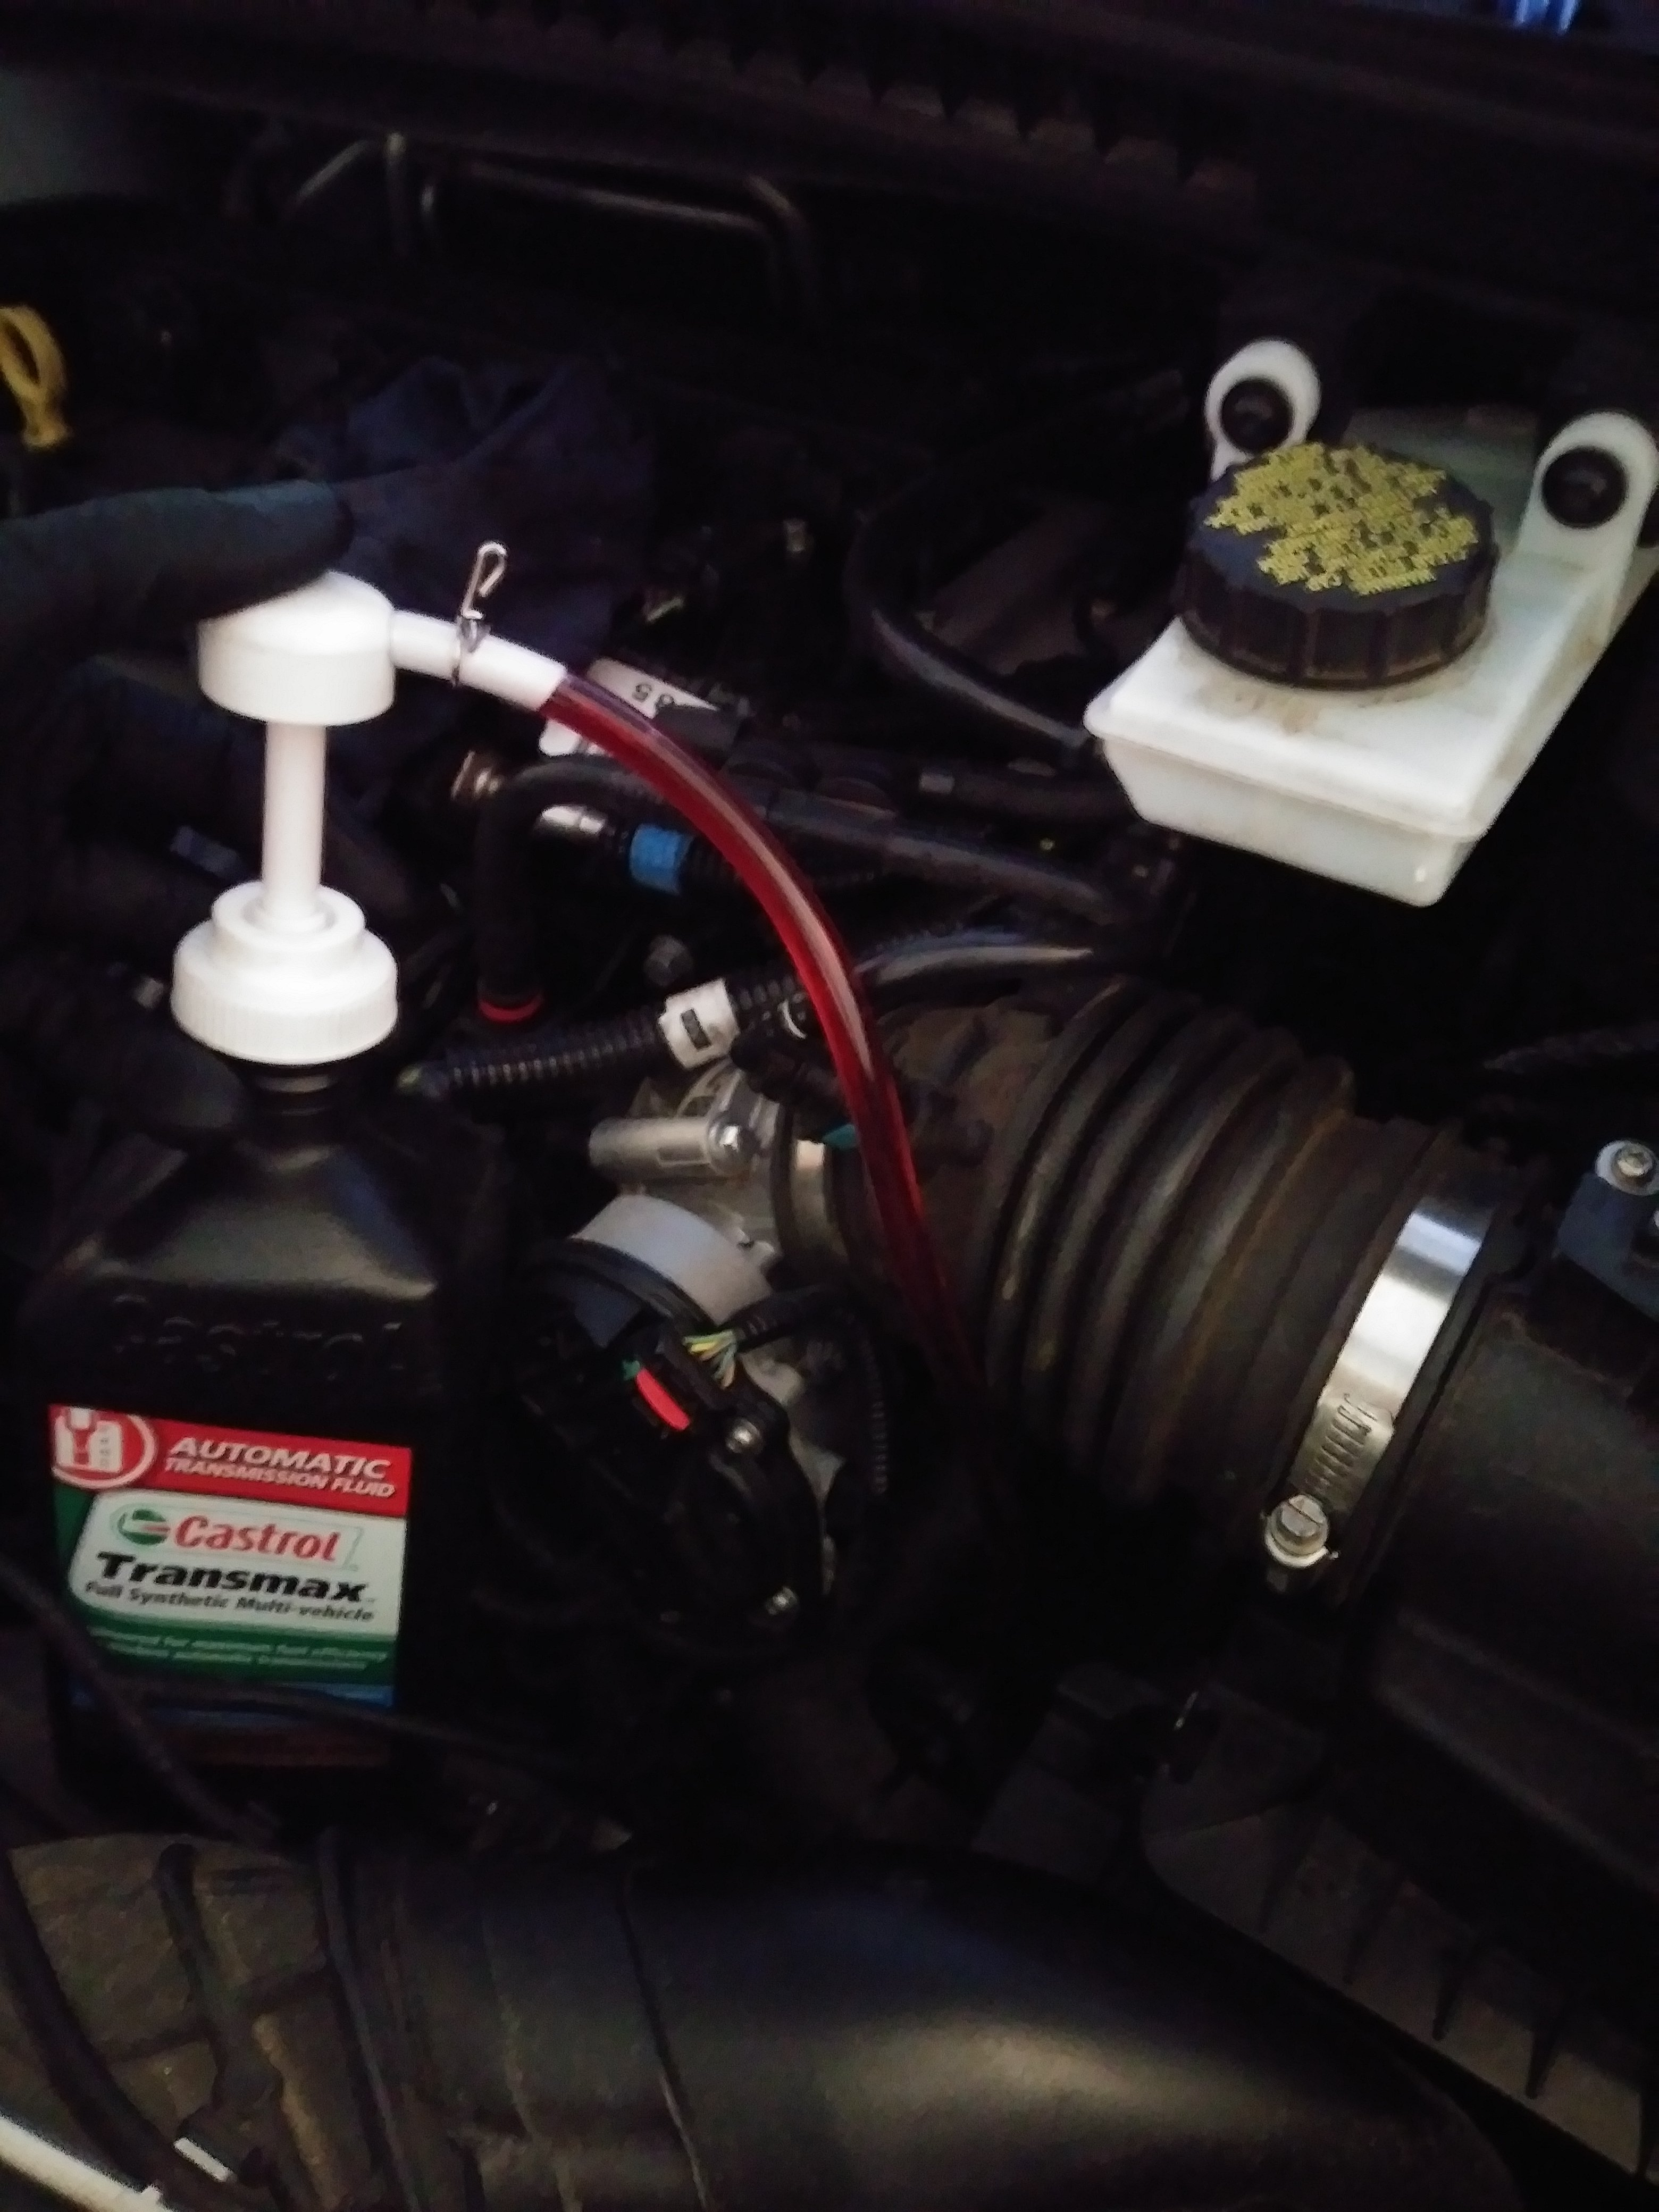 2014 Transmission Fluid Change To Synthetic Transmission